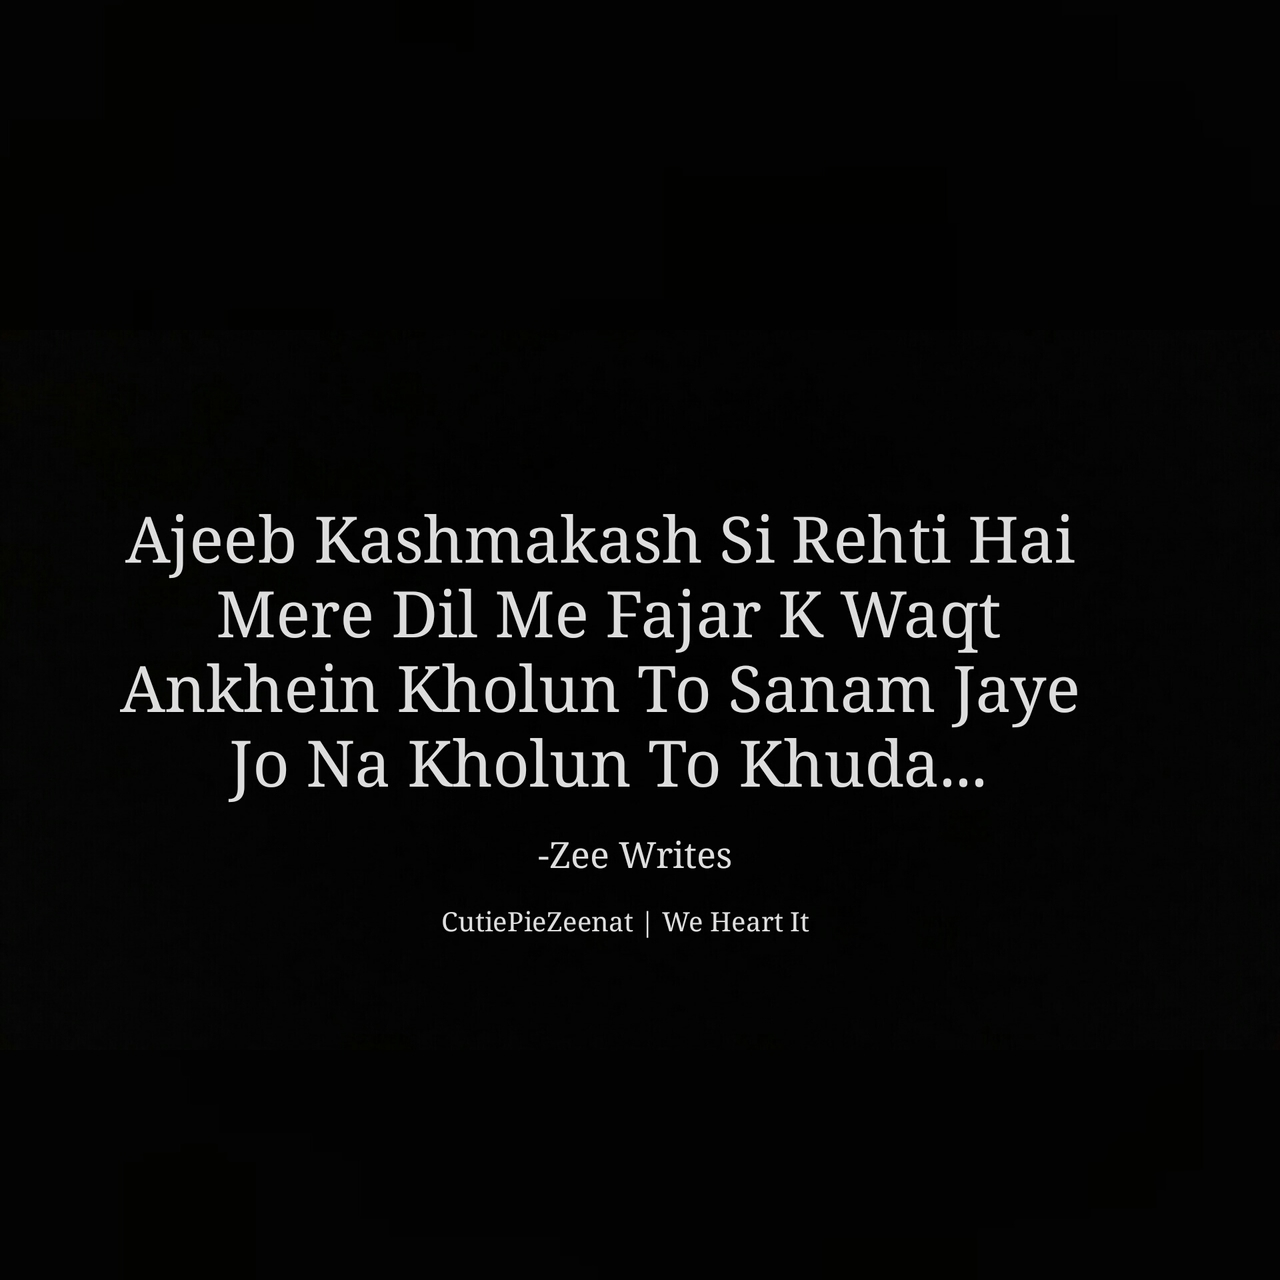 652 images about sad urdu poetry on We Heart It | See more